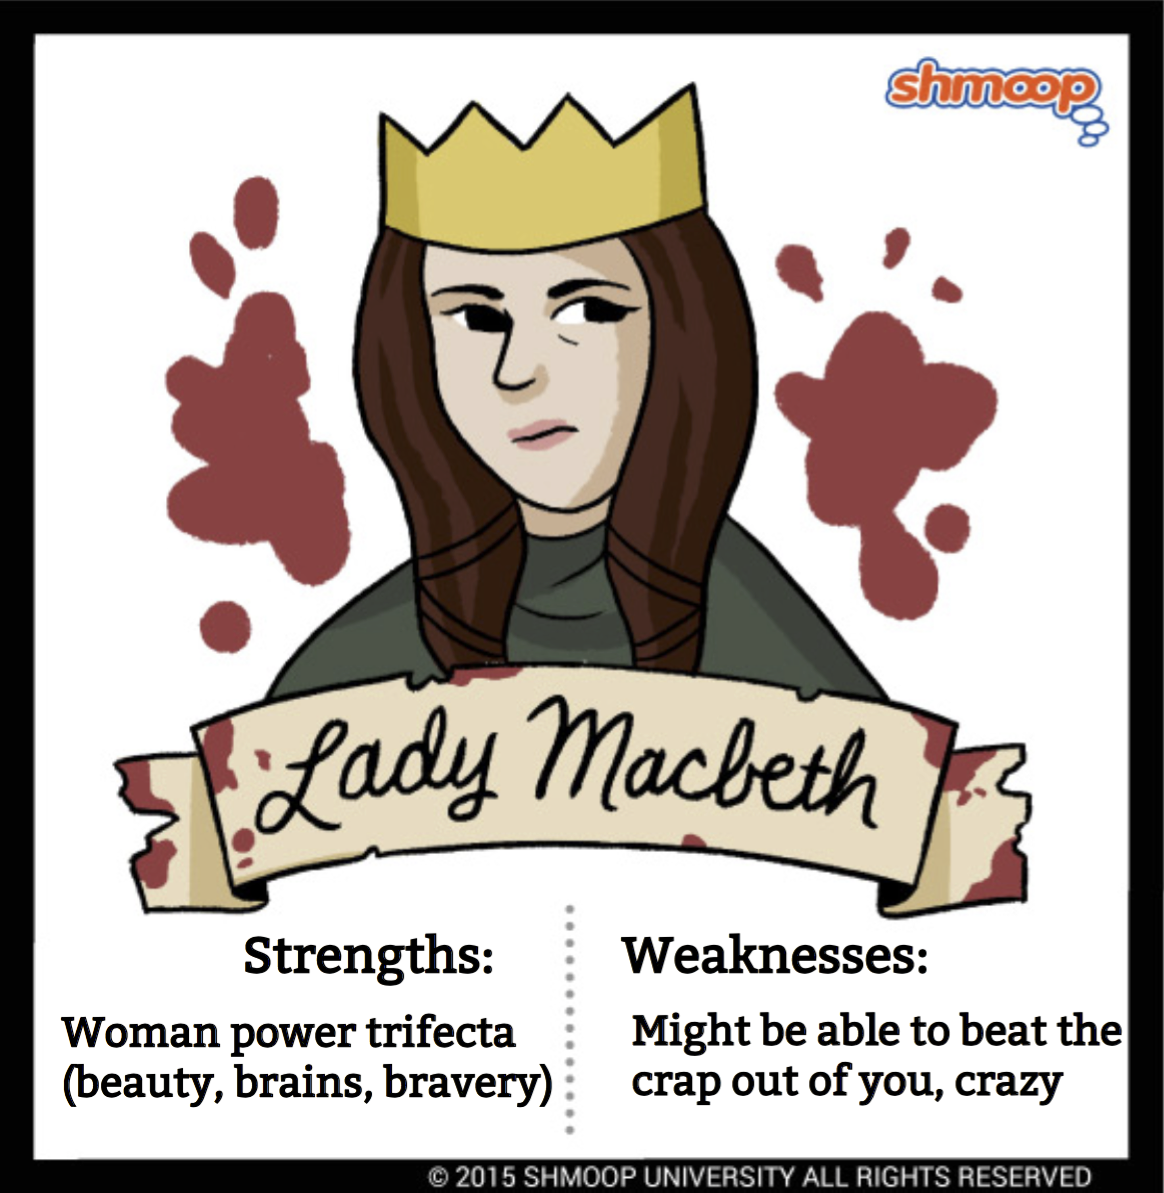 macbeth lady macbeths character essay An analysis of shakespeare's most evil feminine creation lady macbeth hears both of the coming royal visit, and also of the appearance and words of the three witches although a bold, ambitious directly she hears of the king's visit, she resolves in her own mind that he shall never leave macbeth's castle alive for she.